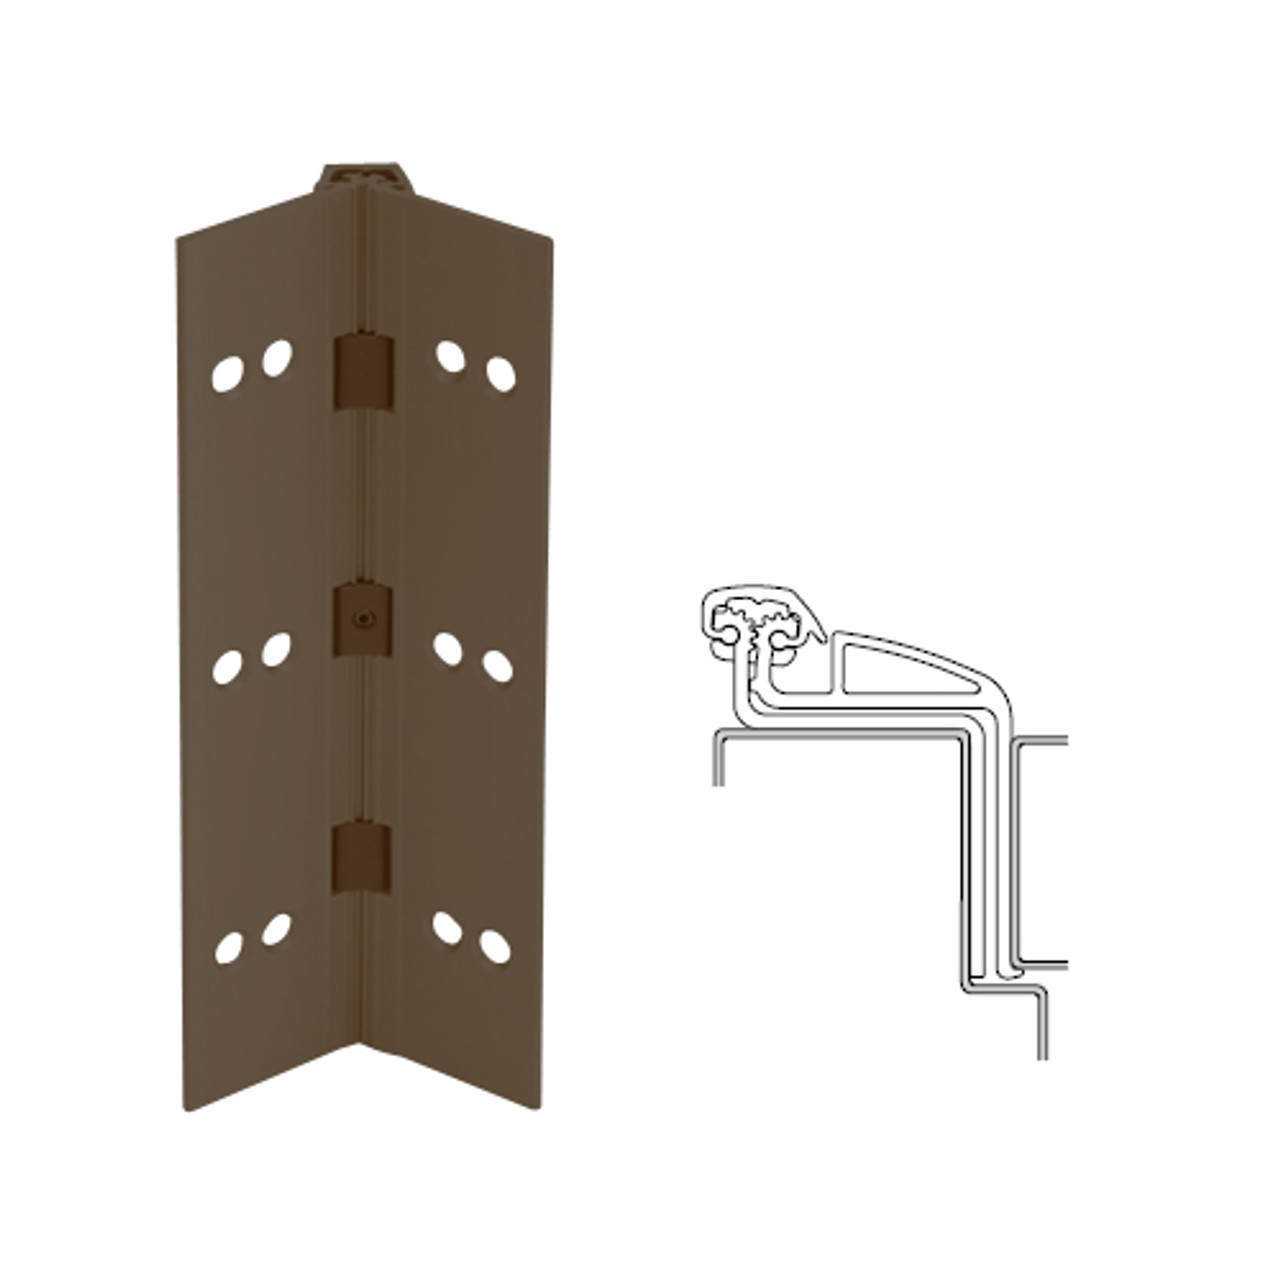 041XY-313AN-85 IVES Full Mortise Continuous Geared Hinges in Dark Bronze Anodized